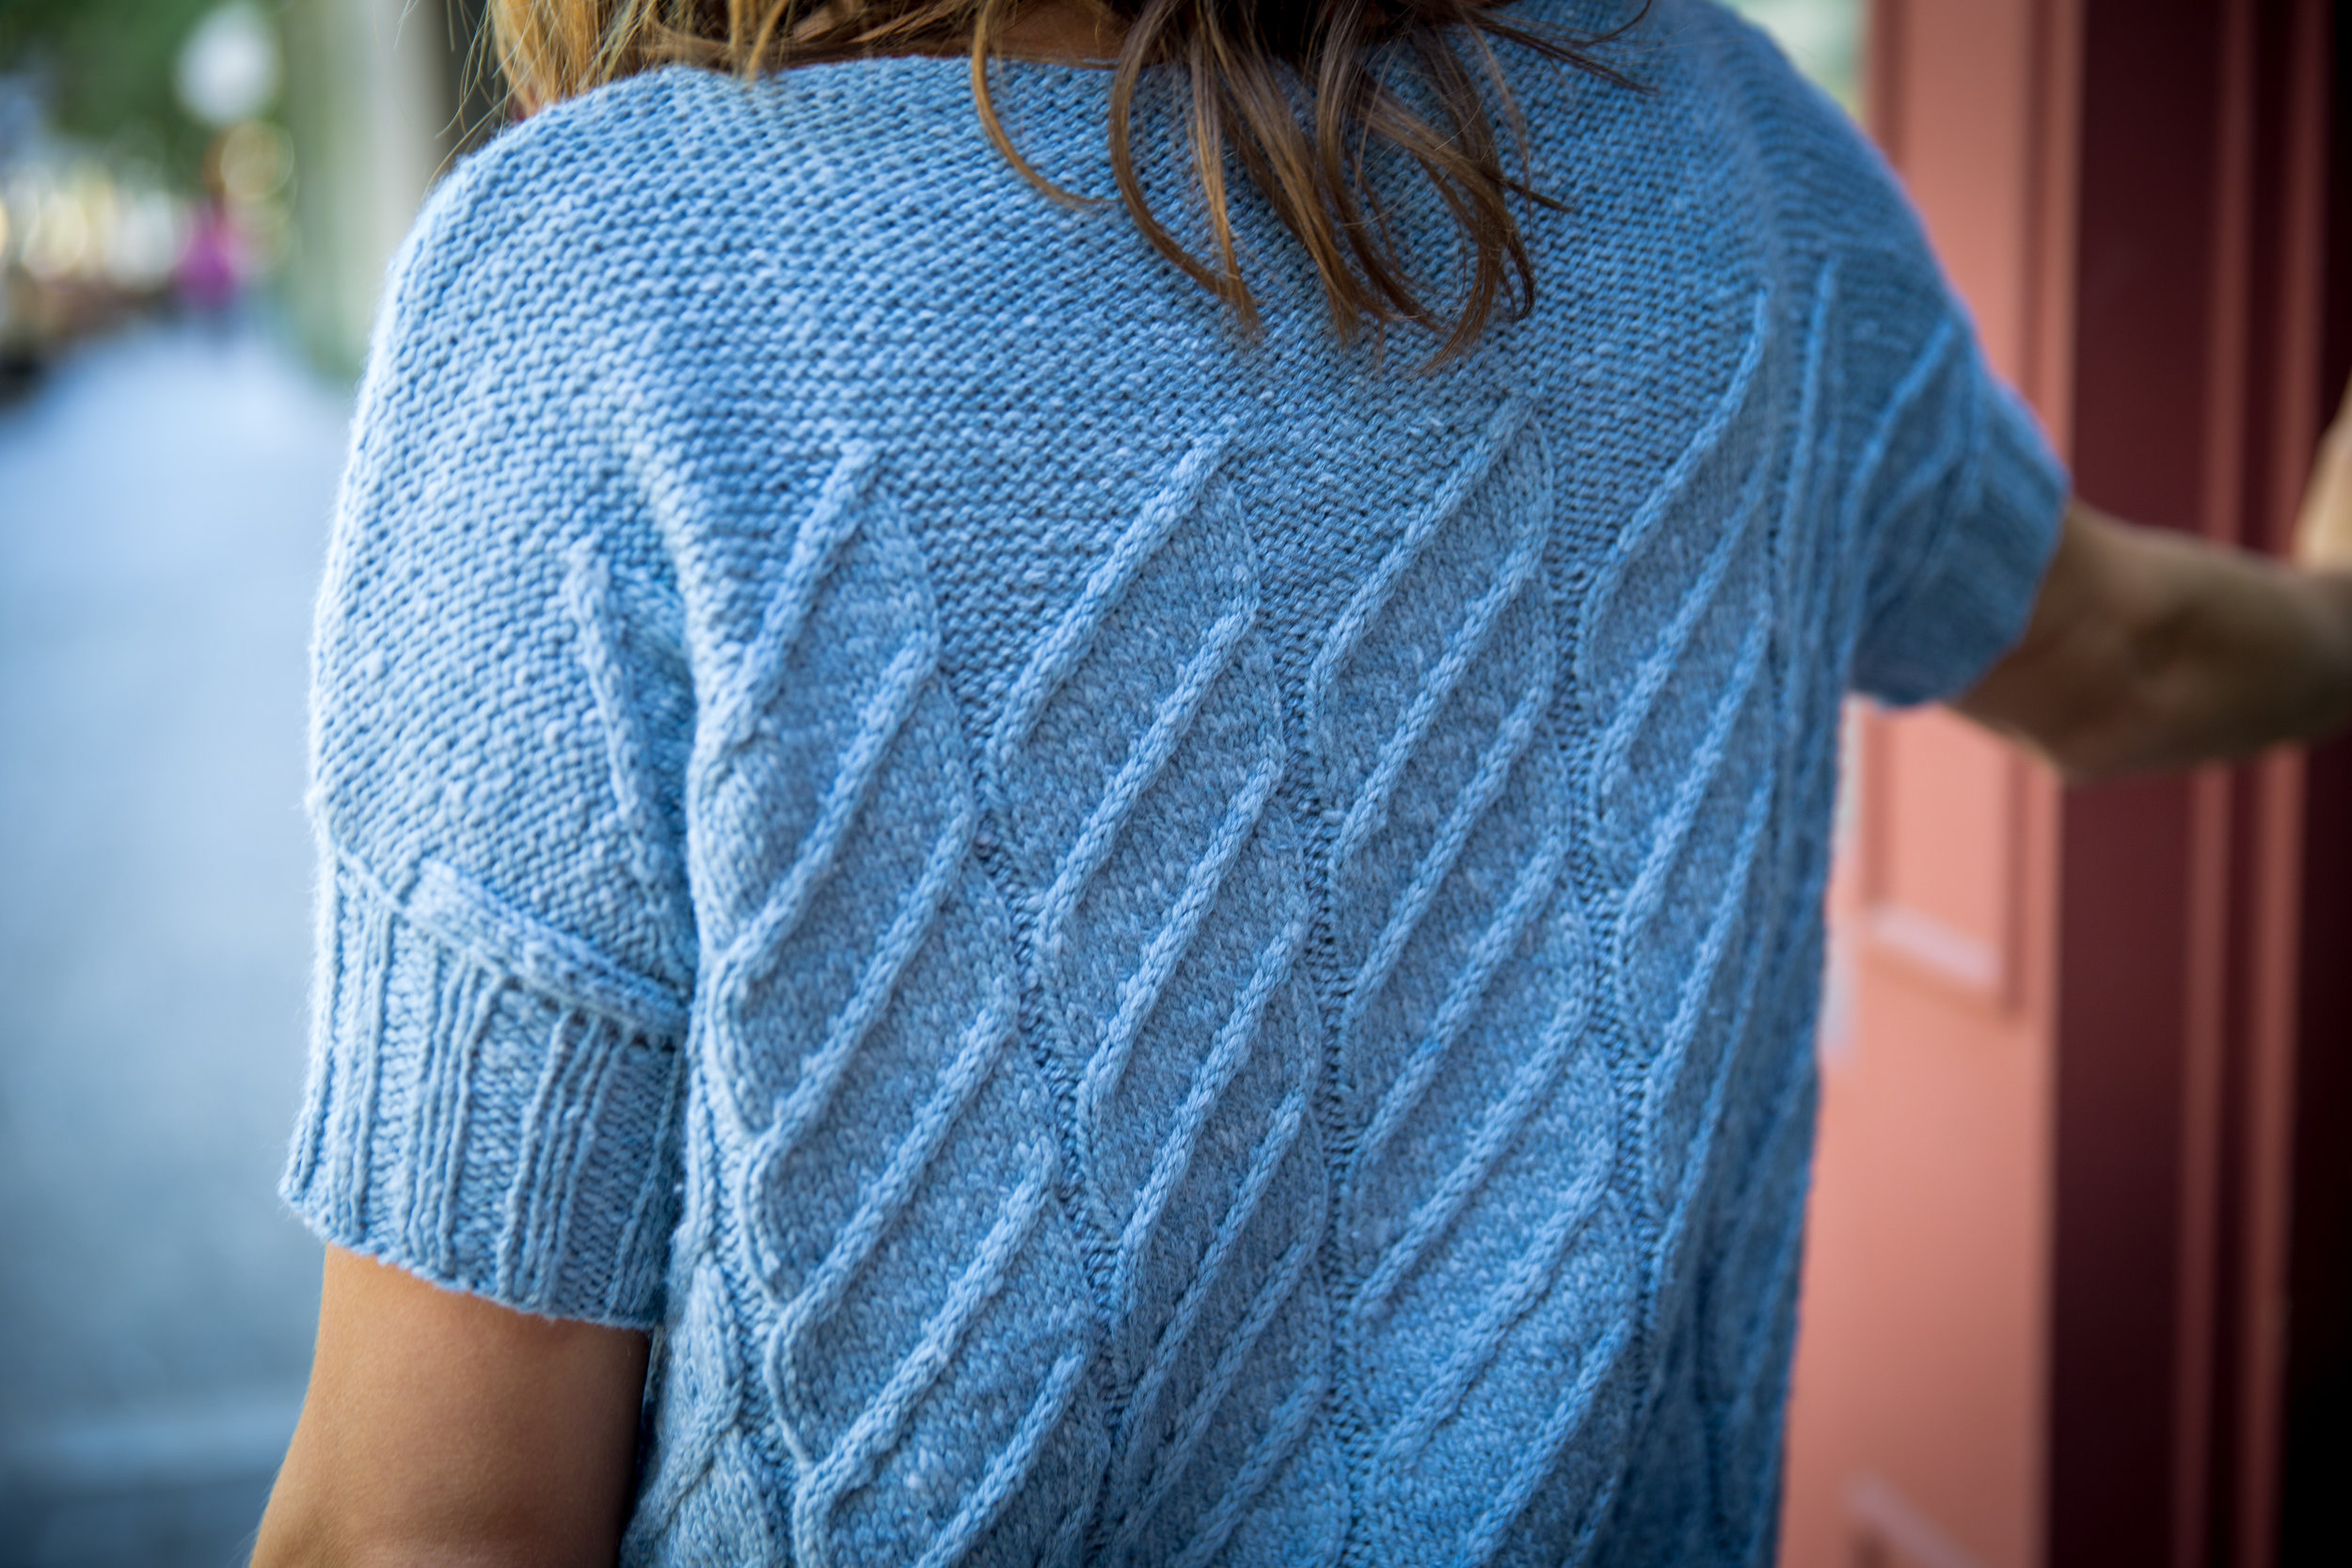 Larkspur (summer 2018) came out of my really wanting a lightweight tee with the same kind of textures and cables I love to knit.